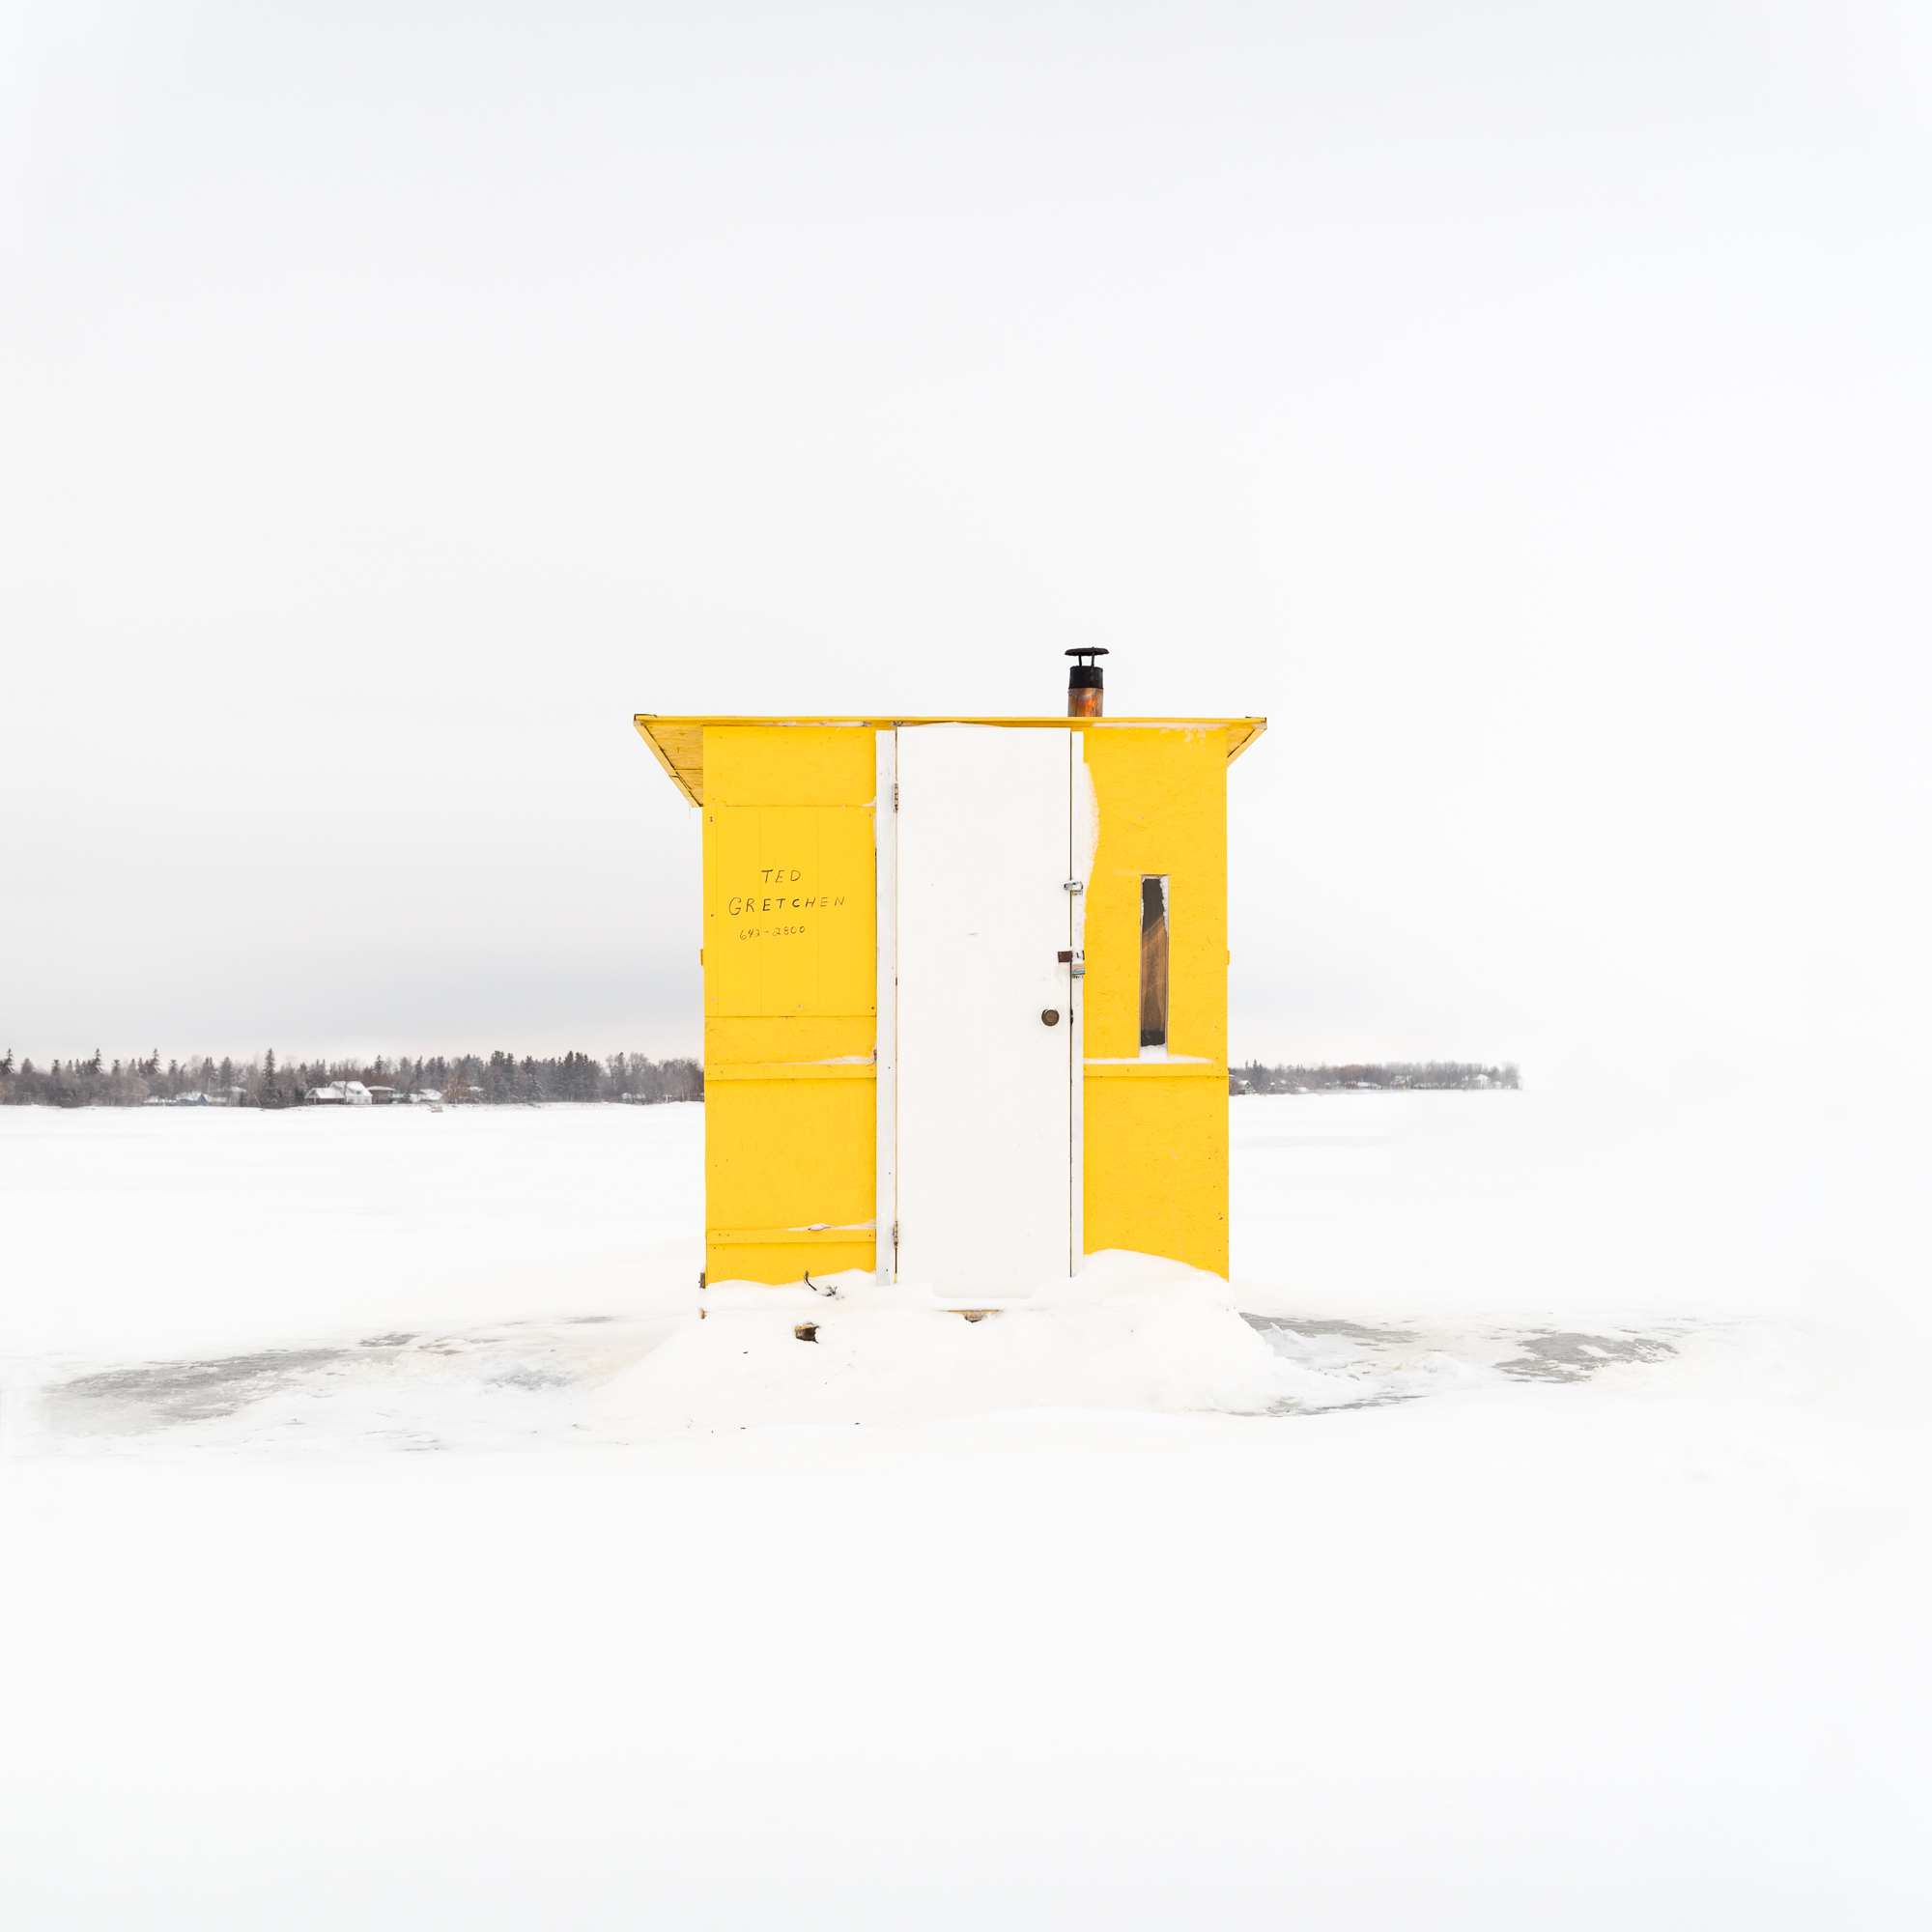 Ice Fishing Hut I